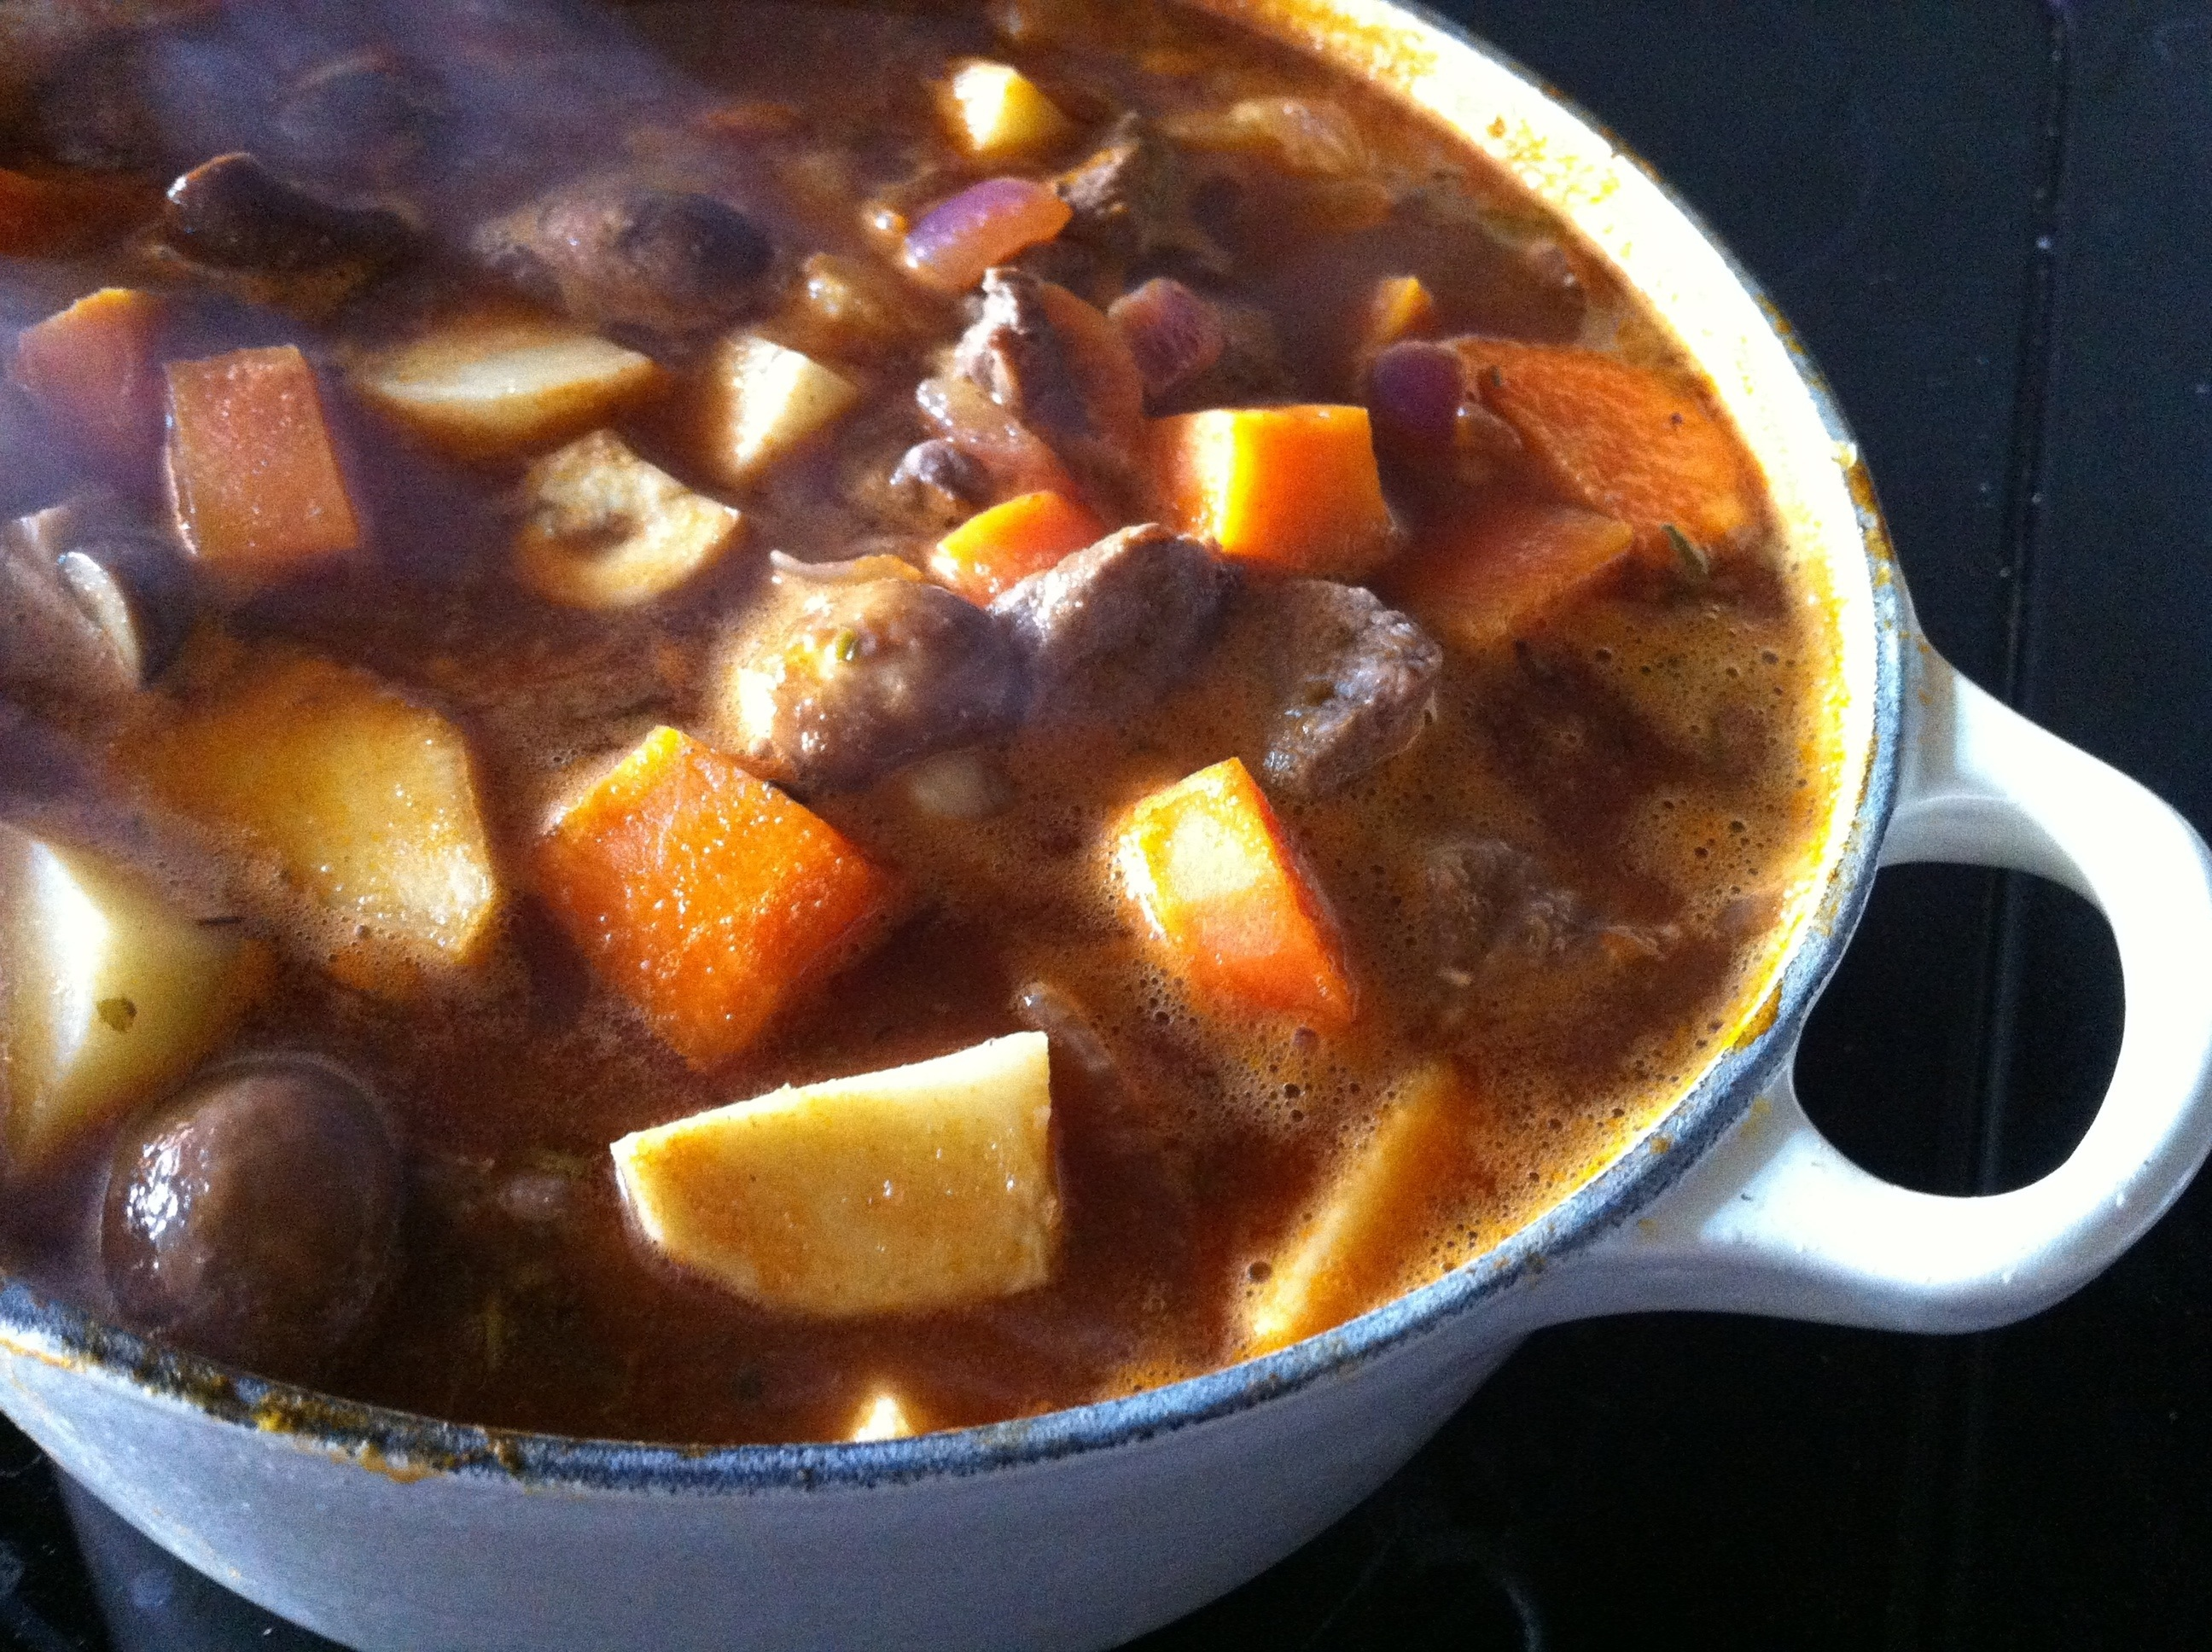 ... curry paleo grass fed beef shank the beef shank and cabbage beef stew